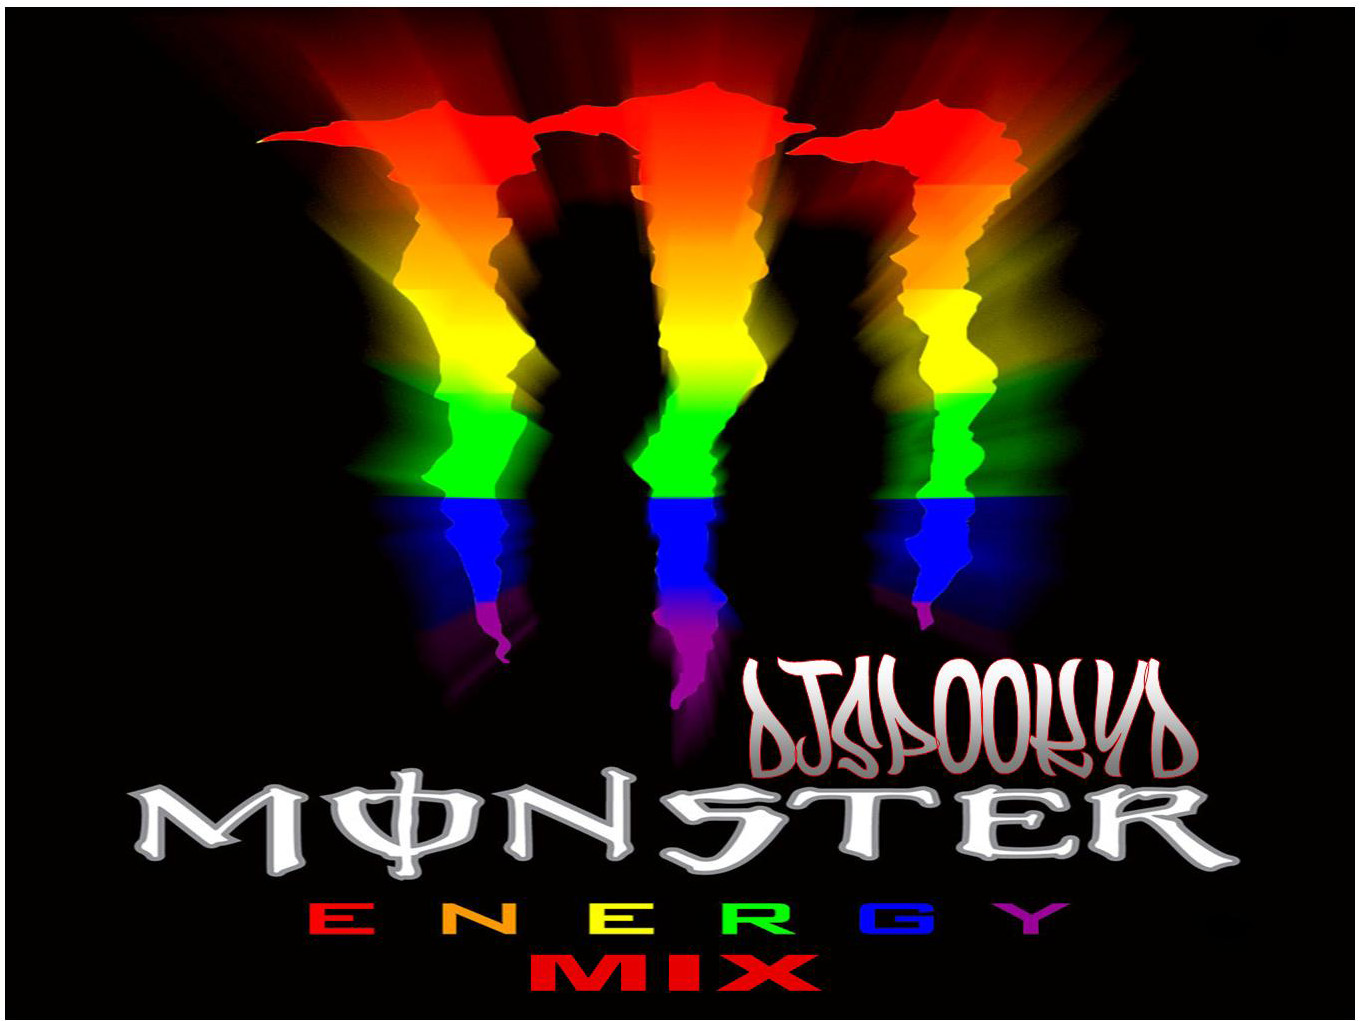 monster logo energy